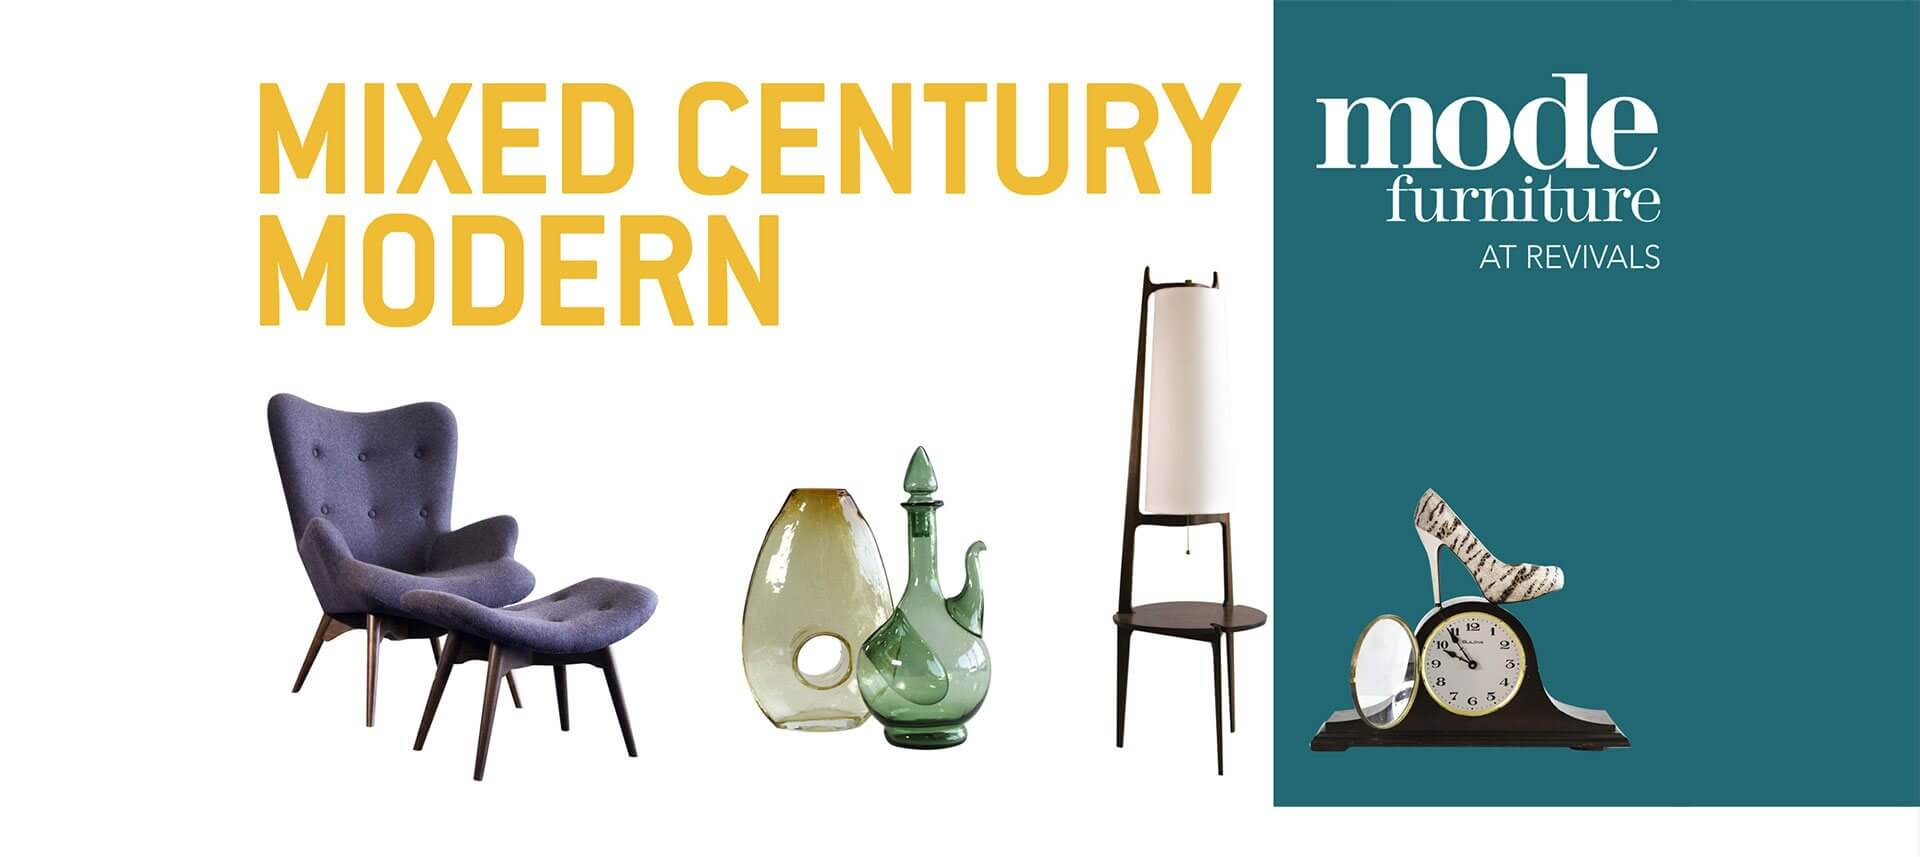 Shopping Palm Springs Best Thrift Best Furniturehome